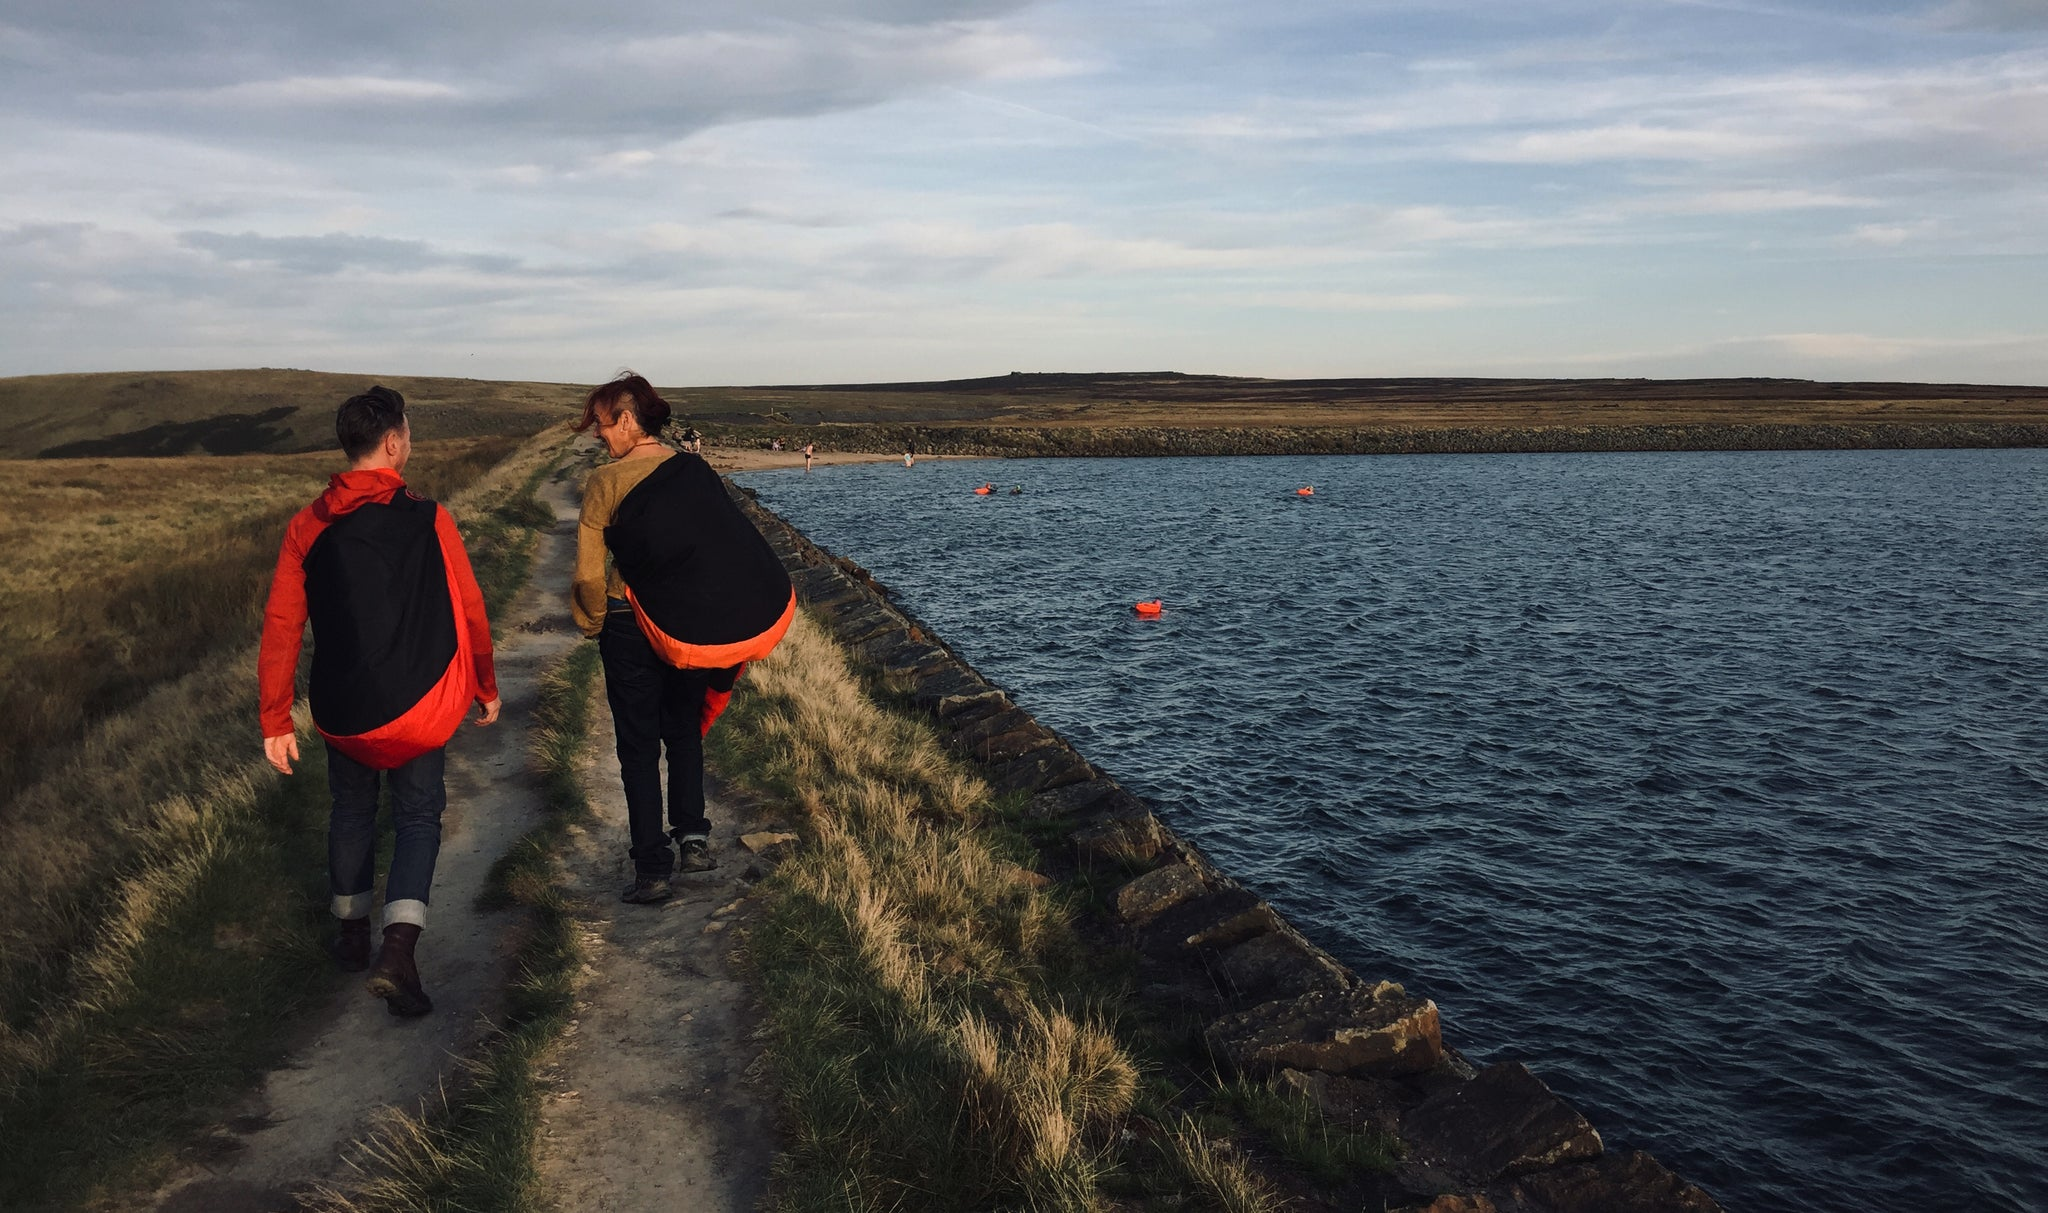 Noah and Jamima walking into the distance near some water with their Turtleback outdoor swimming bags on their backs